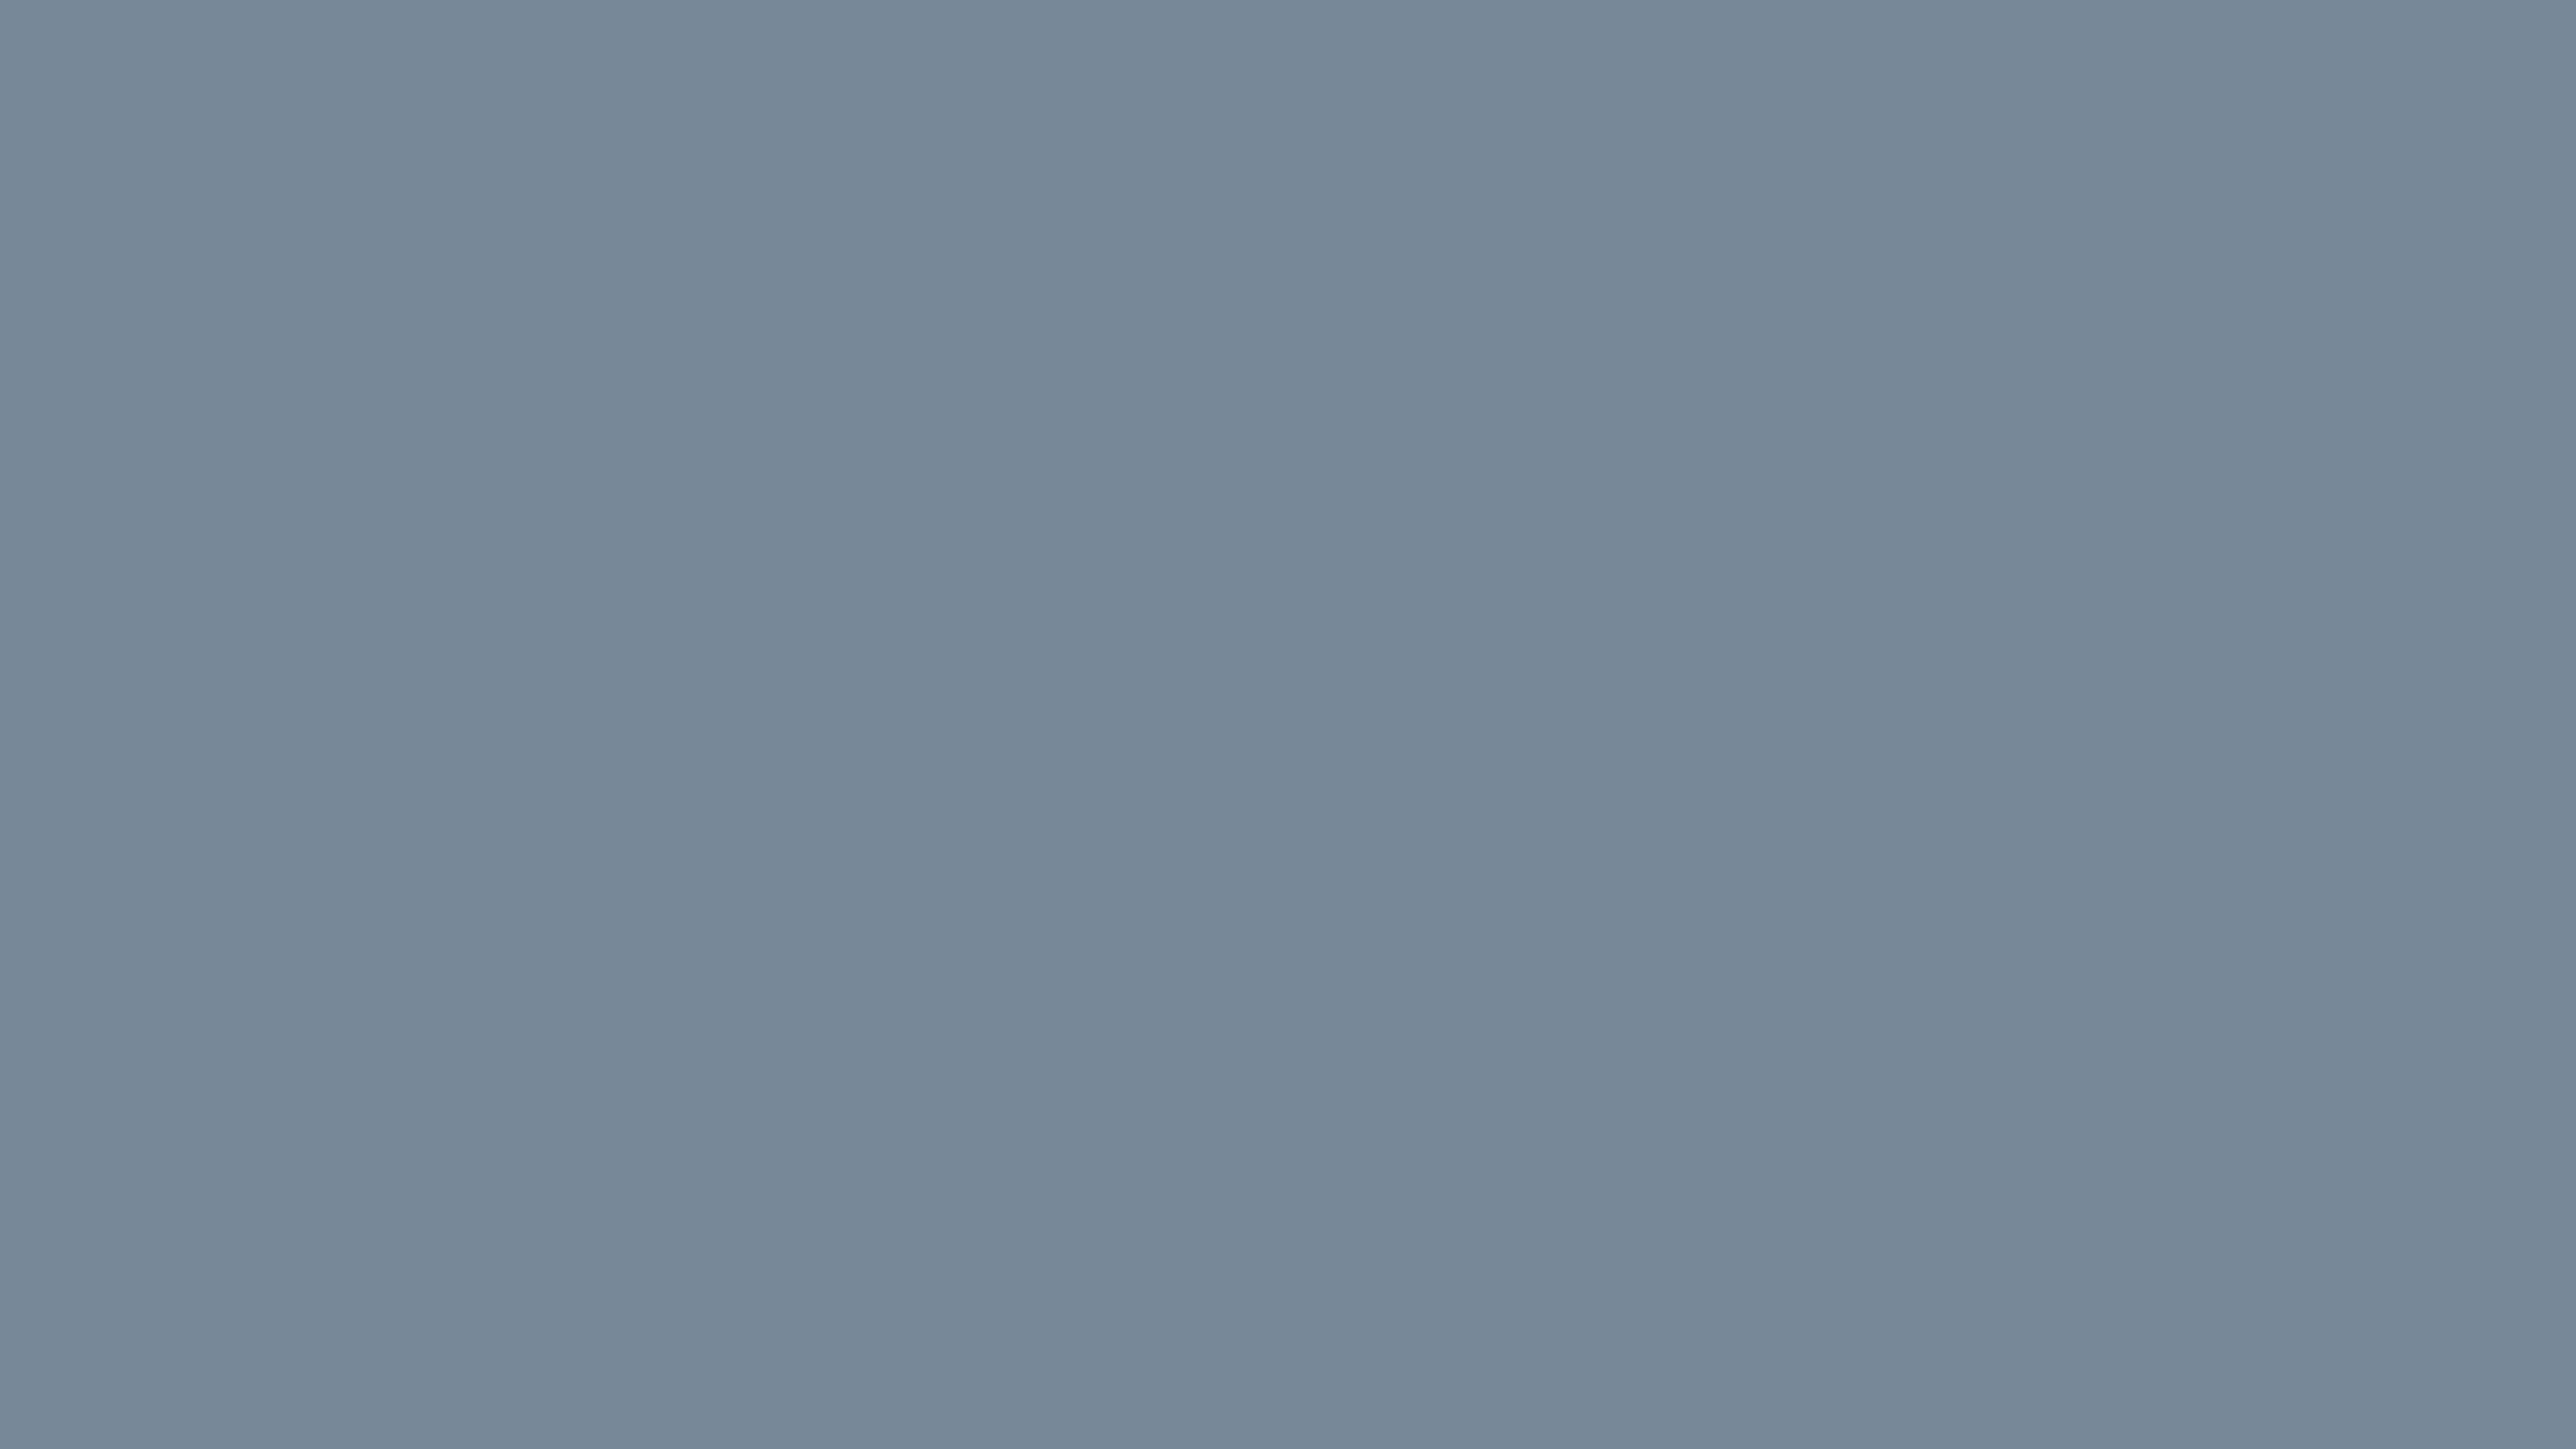 5120x2880 Light Slate Gray Solid Color Background